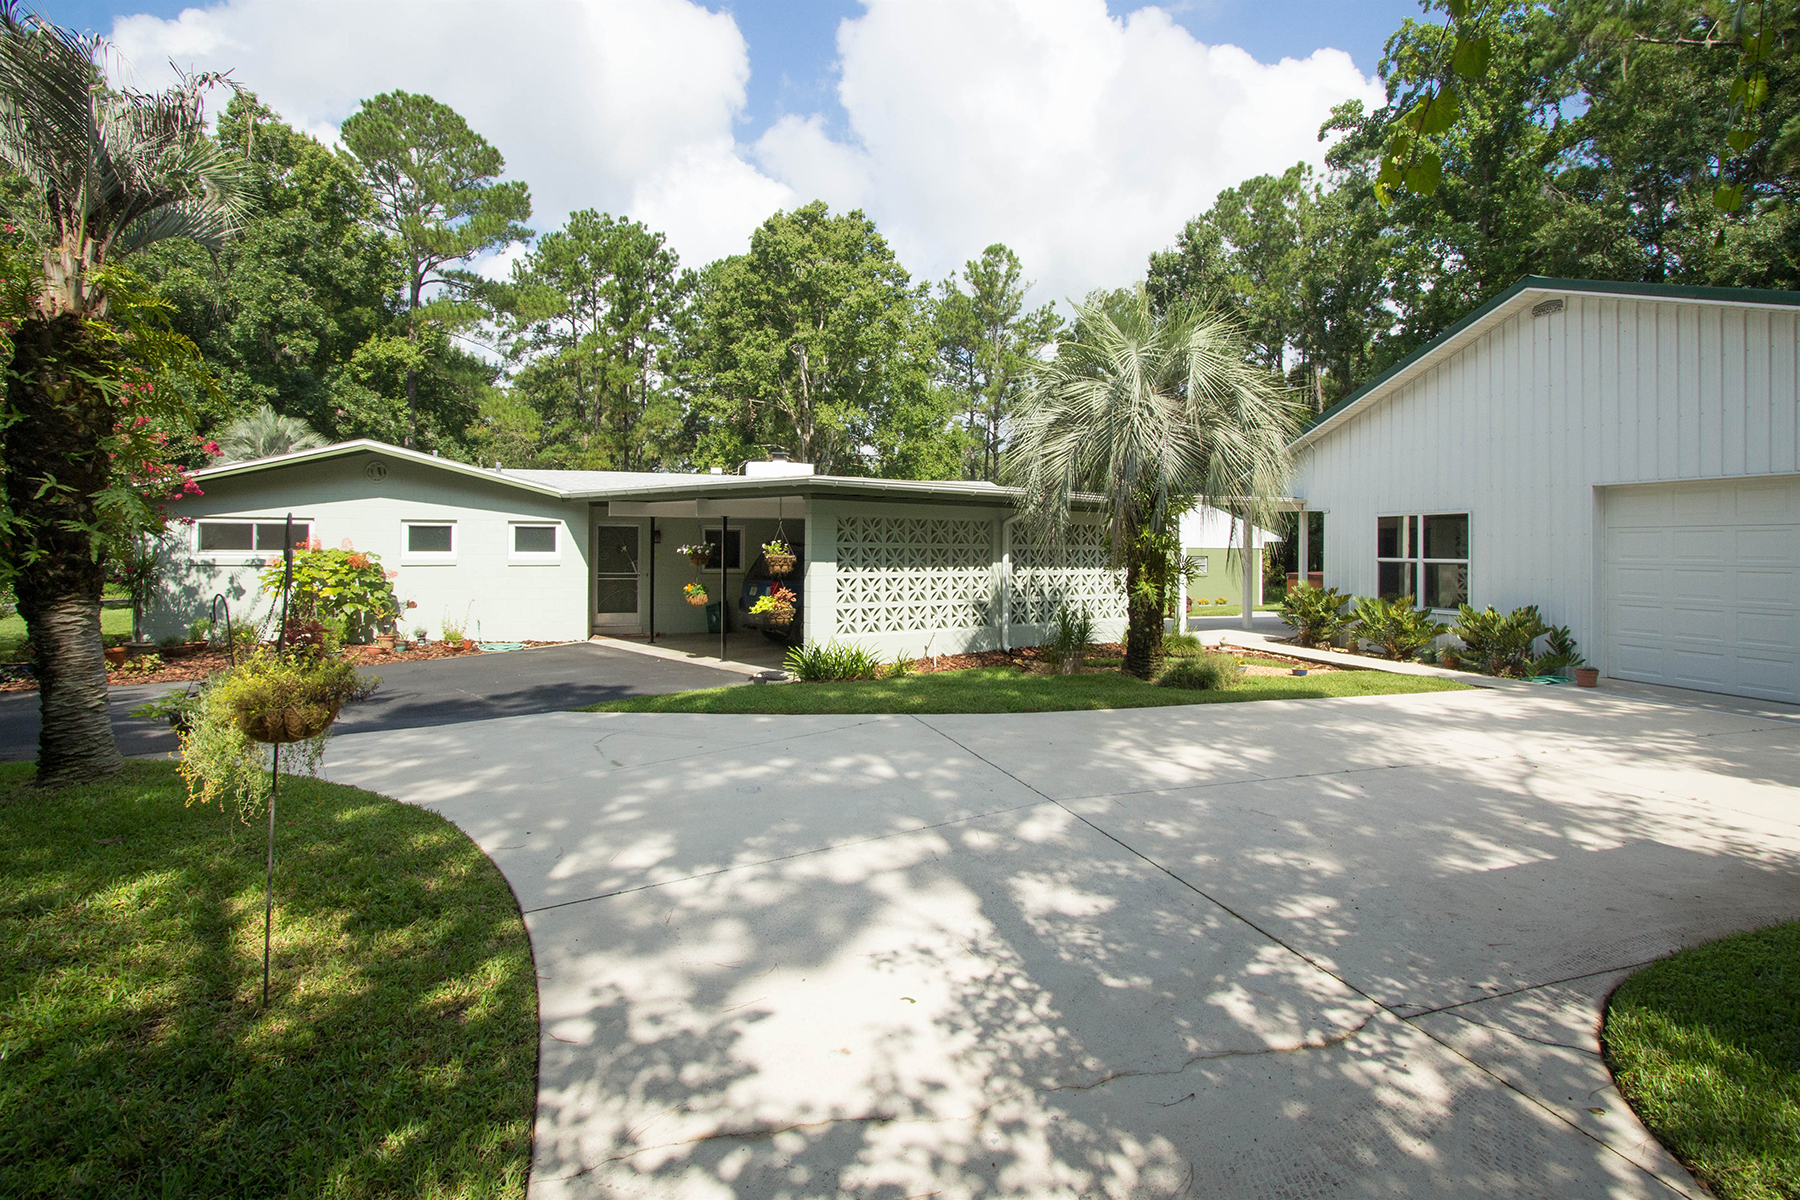 Single Family Homes for Sale at ORLANDO - LONGWOOD 237 Michael Dr Longwood, Florida 32779 United States